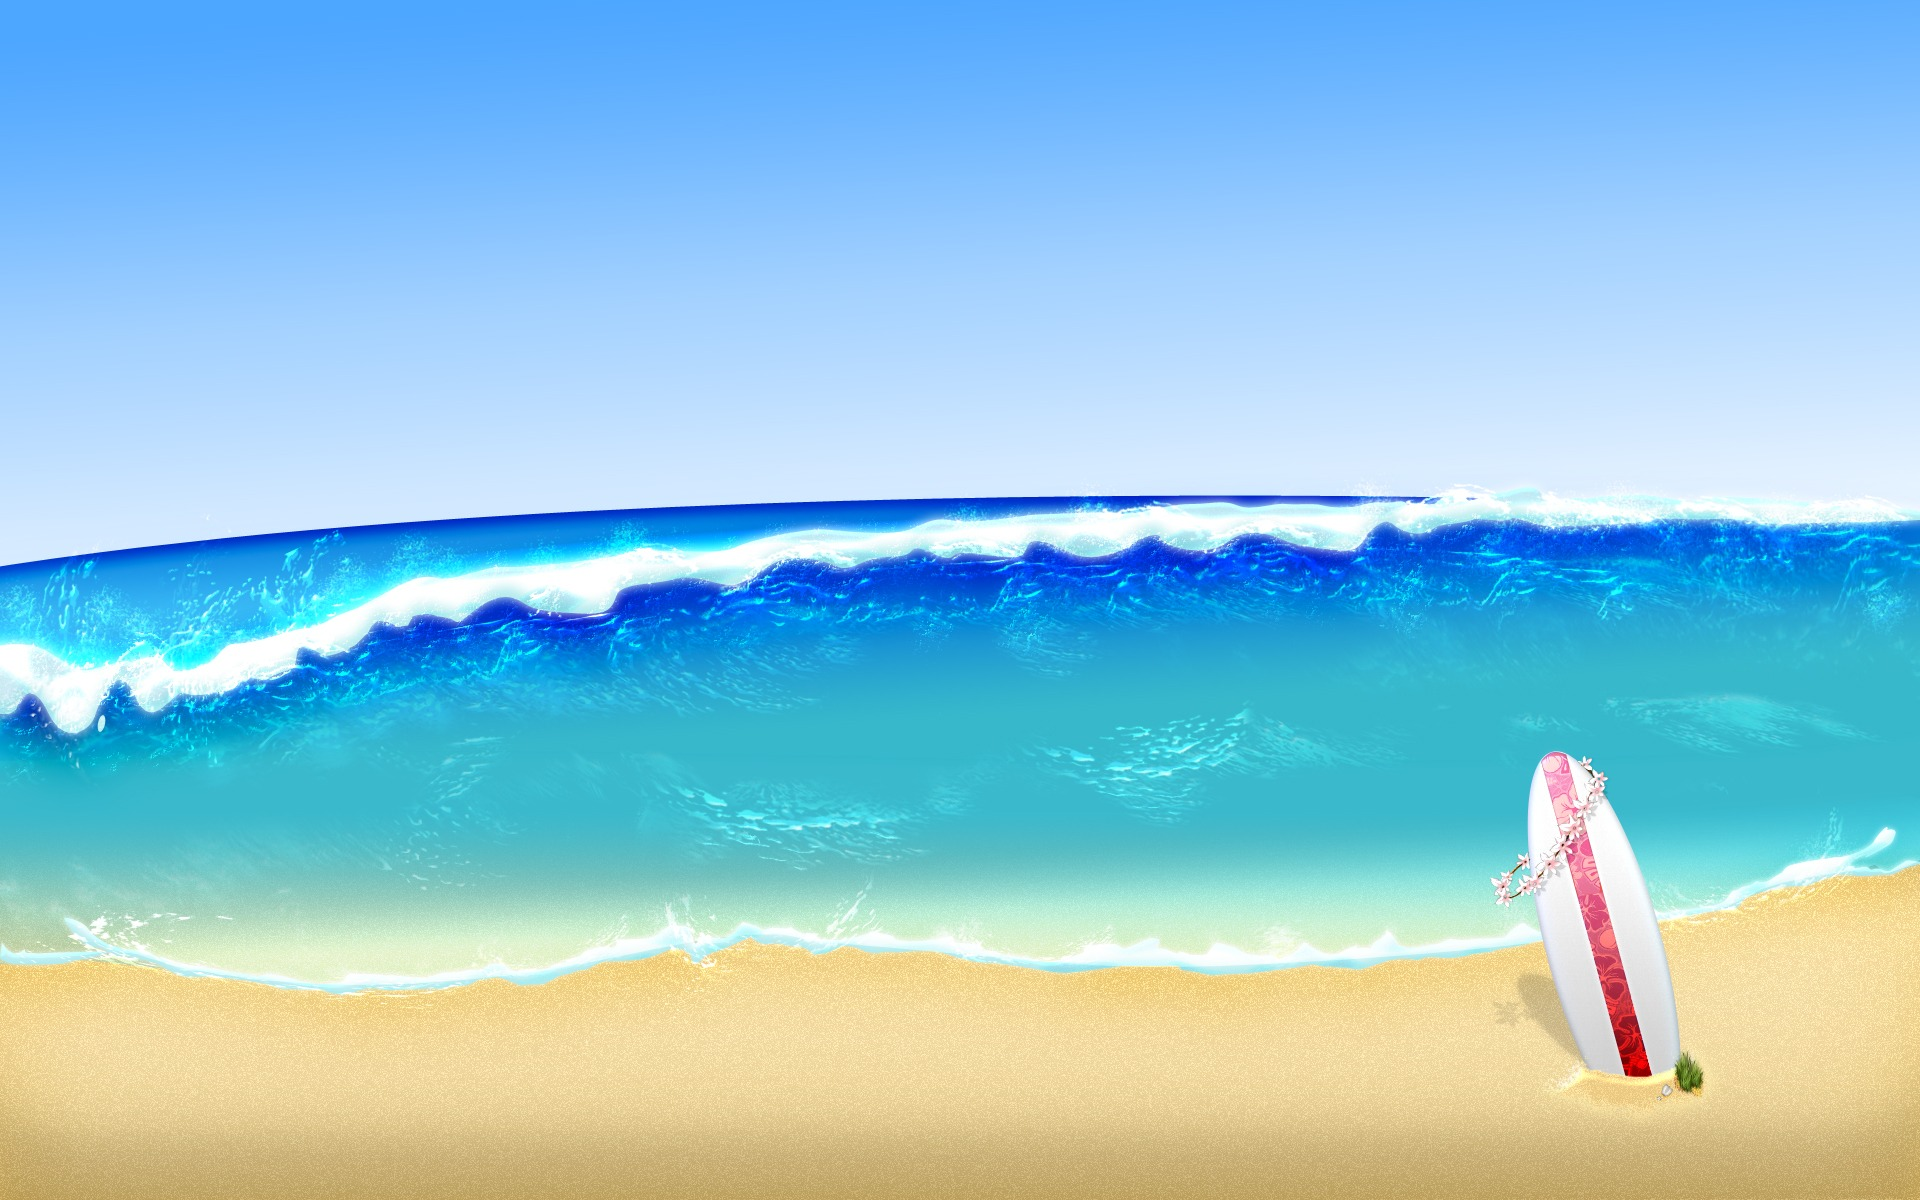 Surf background clipart png library library Surf Wallpaper Abstract 3D Wallpapers in jpg format for free ... png library library